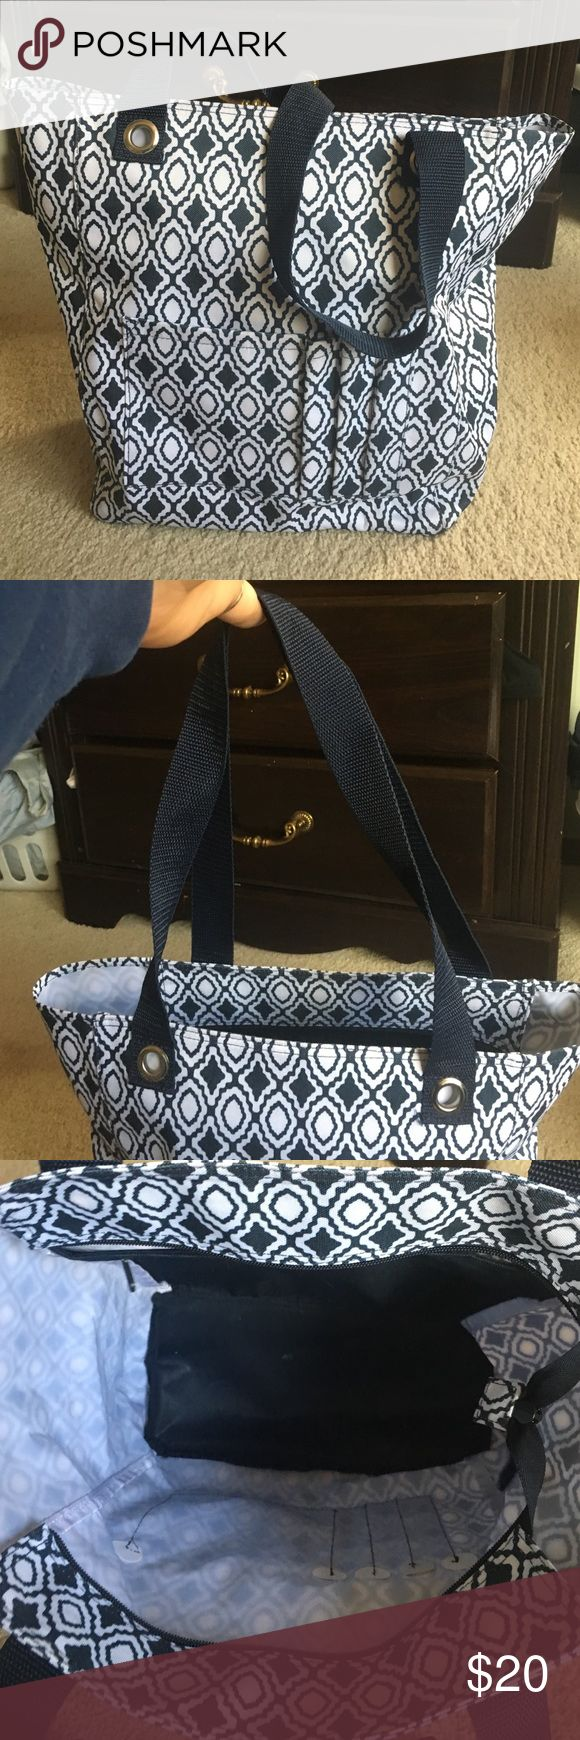 Thirty one essentials storage tote Great blue and white tote. thirty one Bags Shoulder Bags